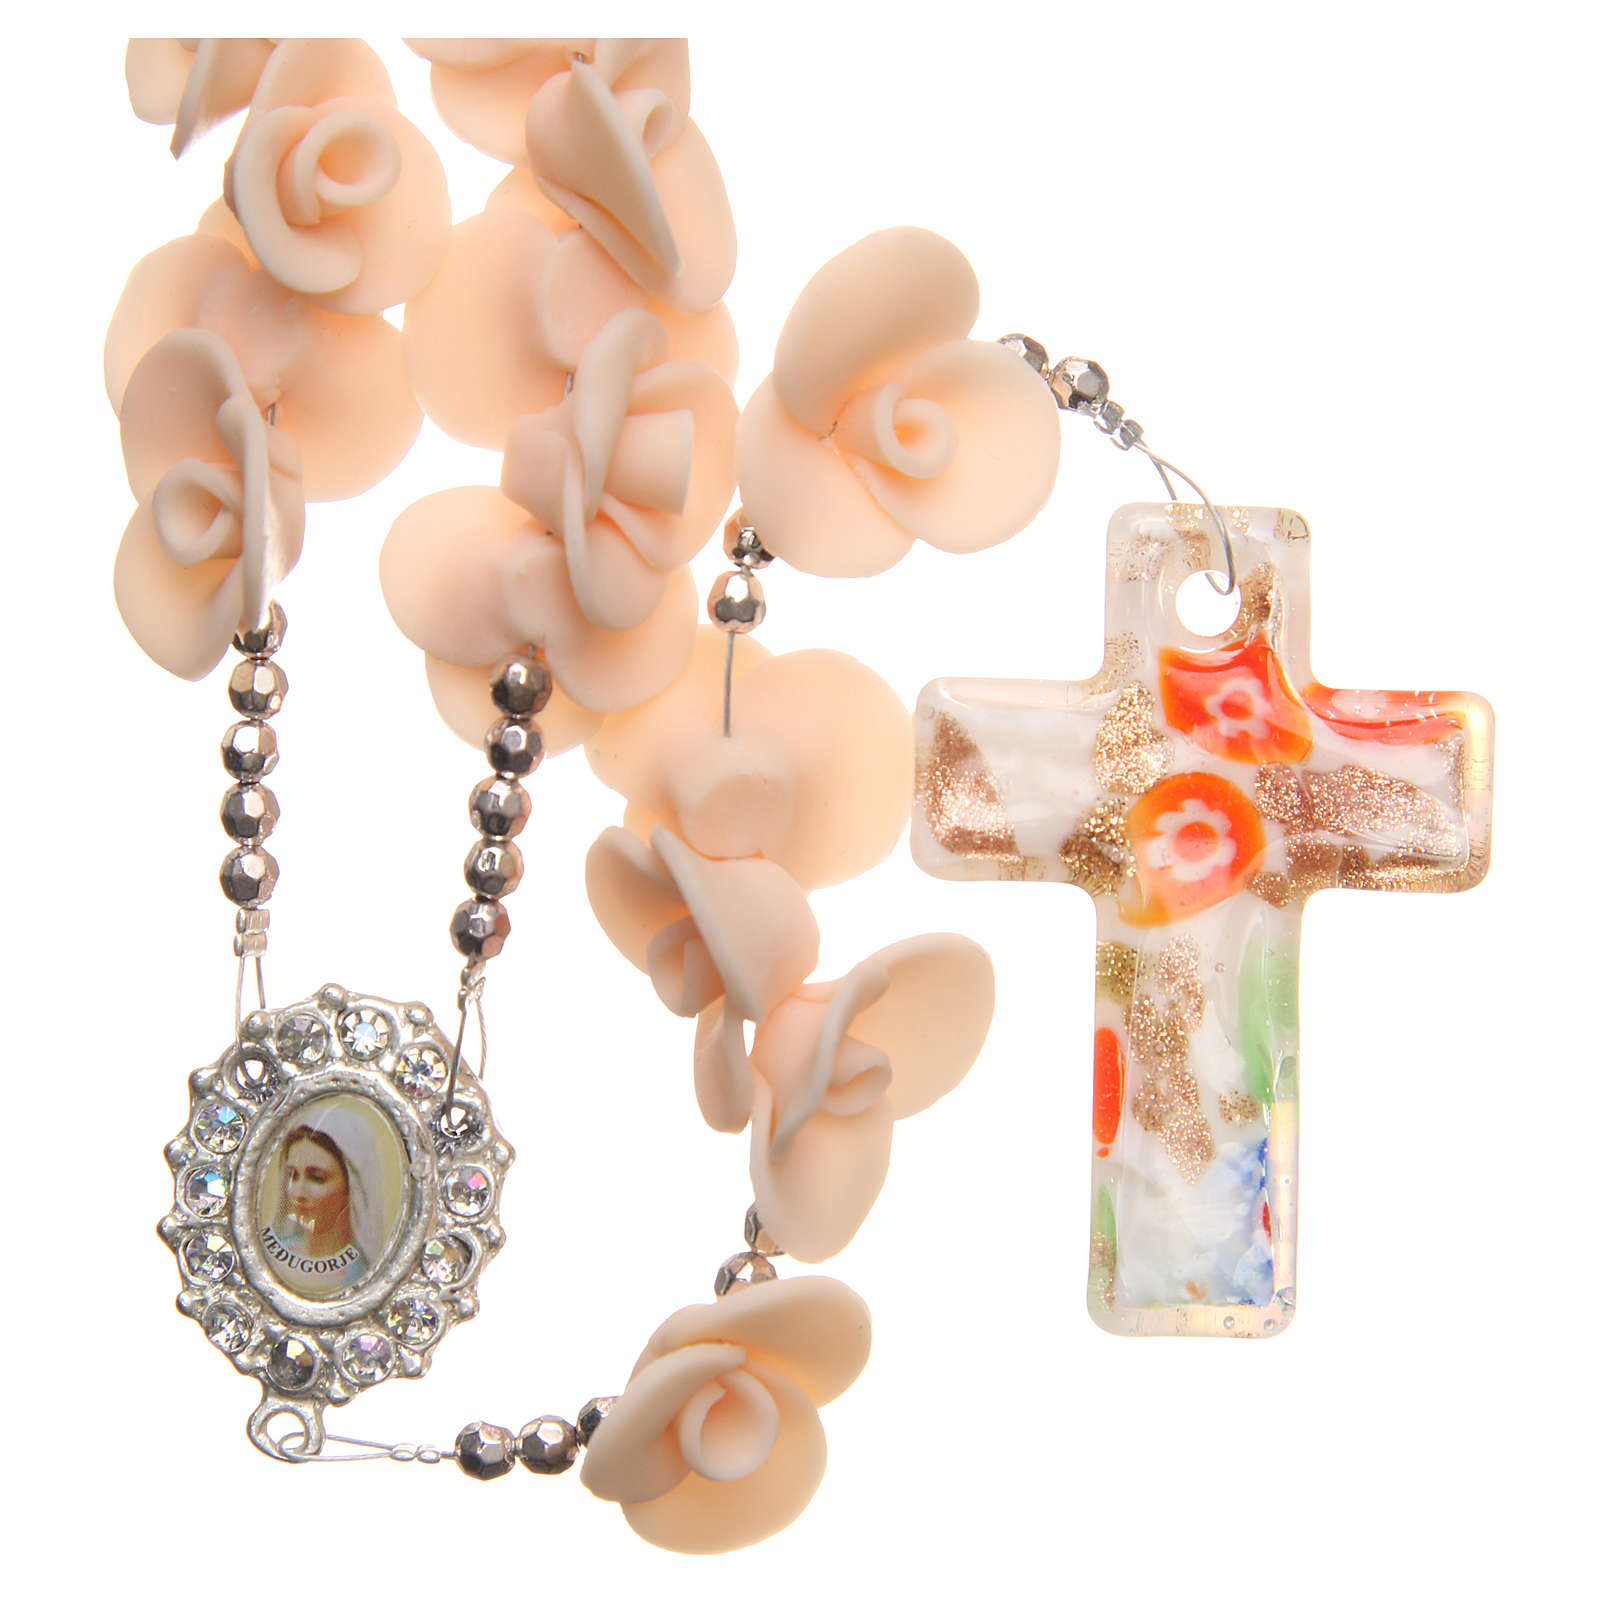 Medjugorje rosary beads with peach roses with cross in Murano glass 4